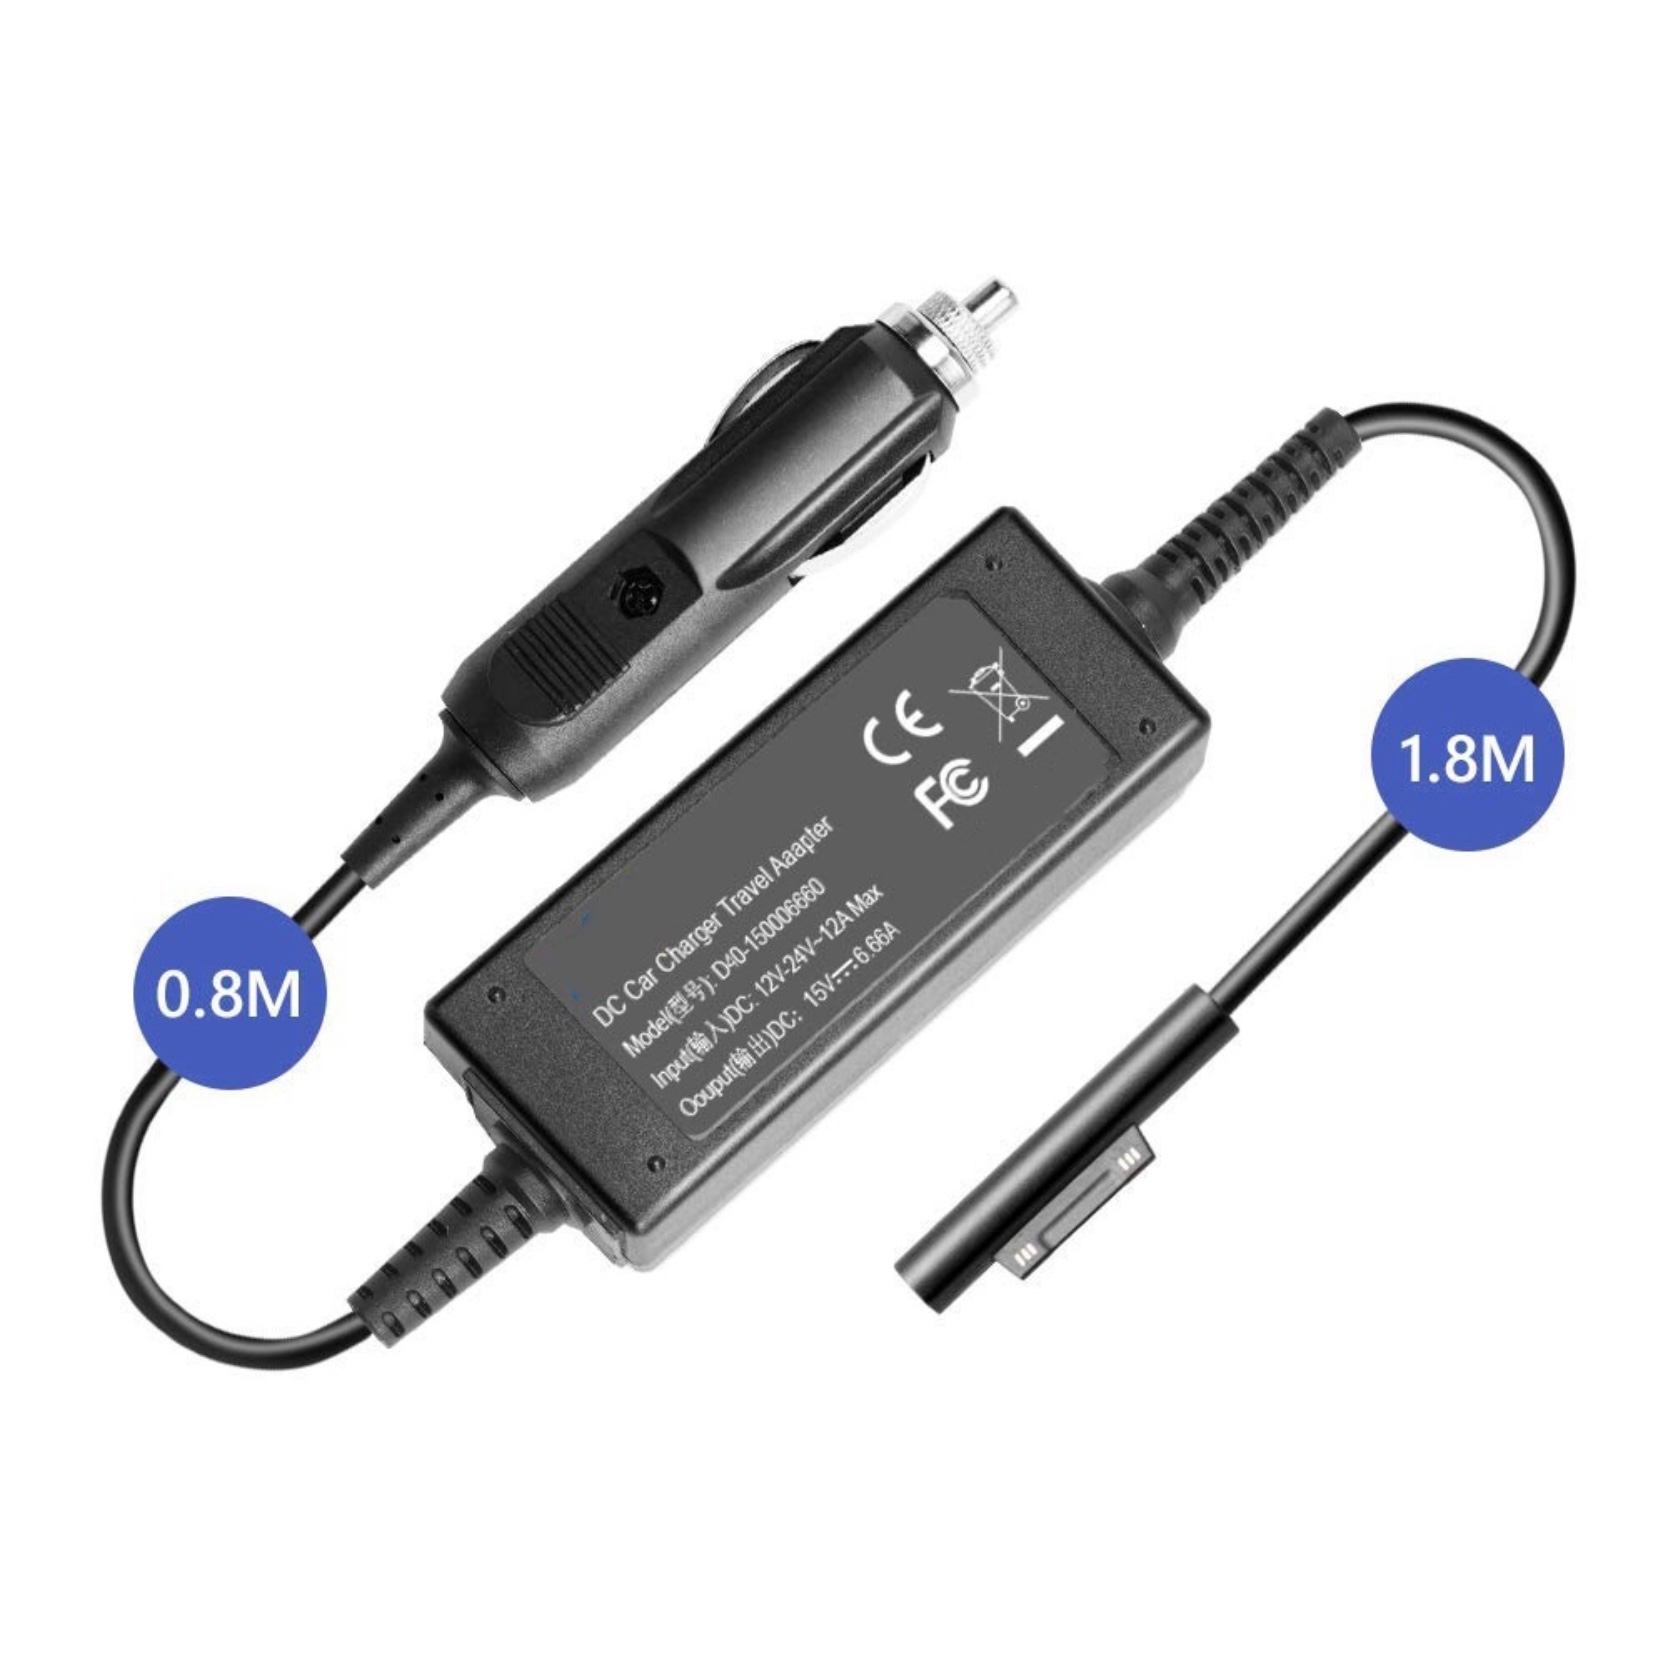 Ref 2595 Chargeur Allume cigares 12V ou 24V 95W vers Microsoft SURFACE Connect Pro